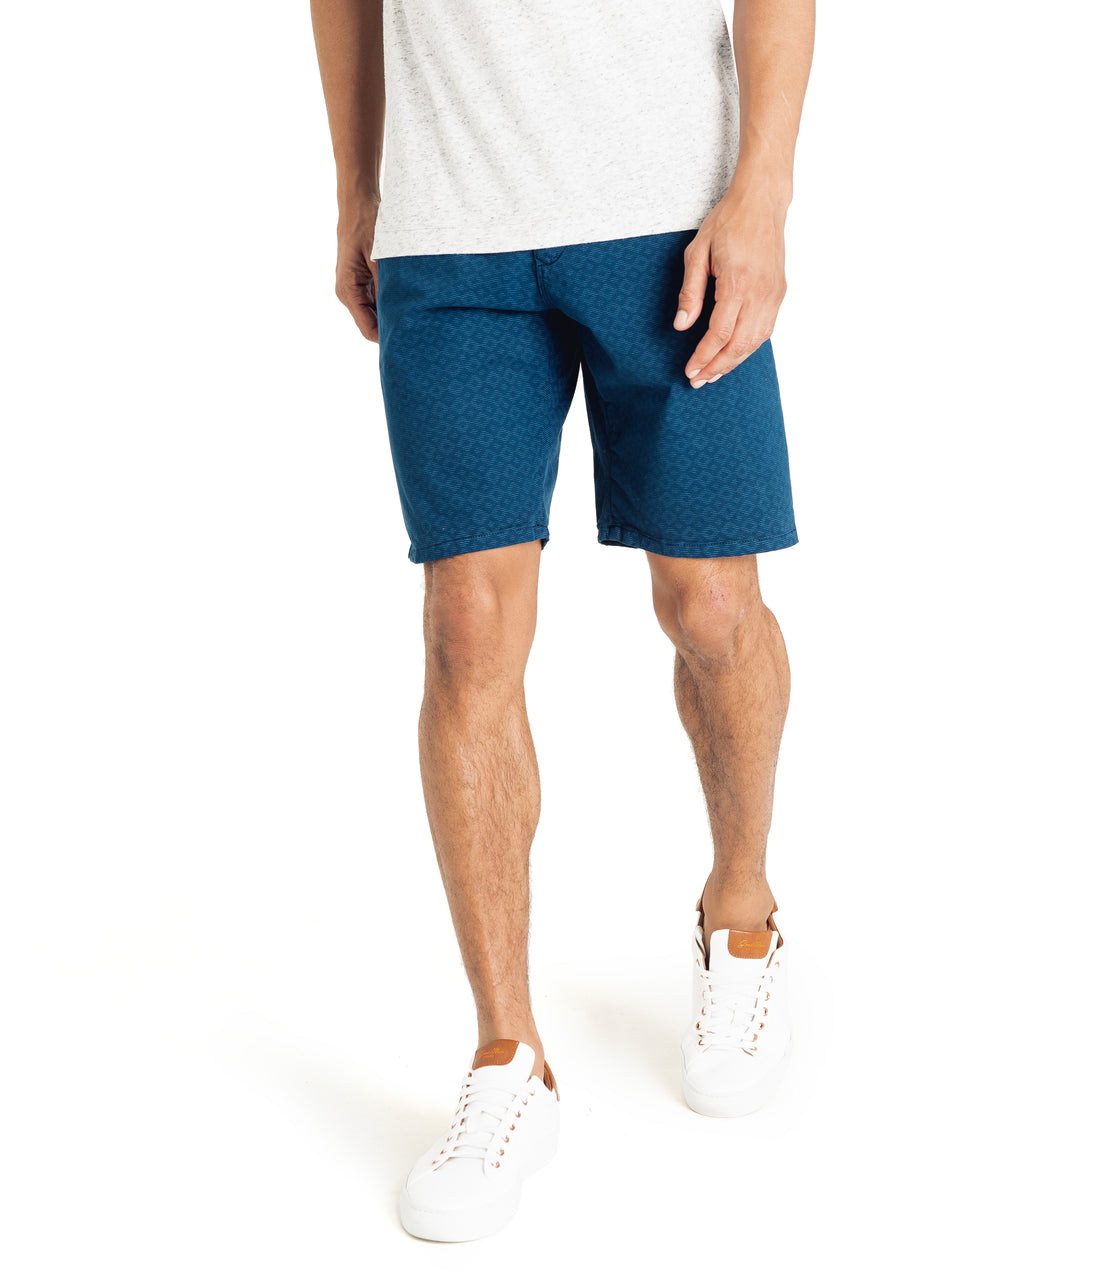 Monaco Diamond Stripe Stretch Twill Wrap Short - Sea - Good Man Brand - Monaco Diamond Stripe Stretch Twill Wrap Short - Sea